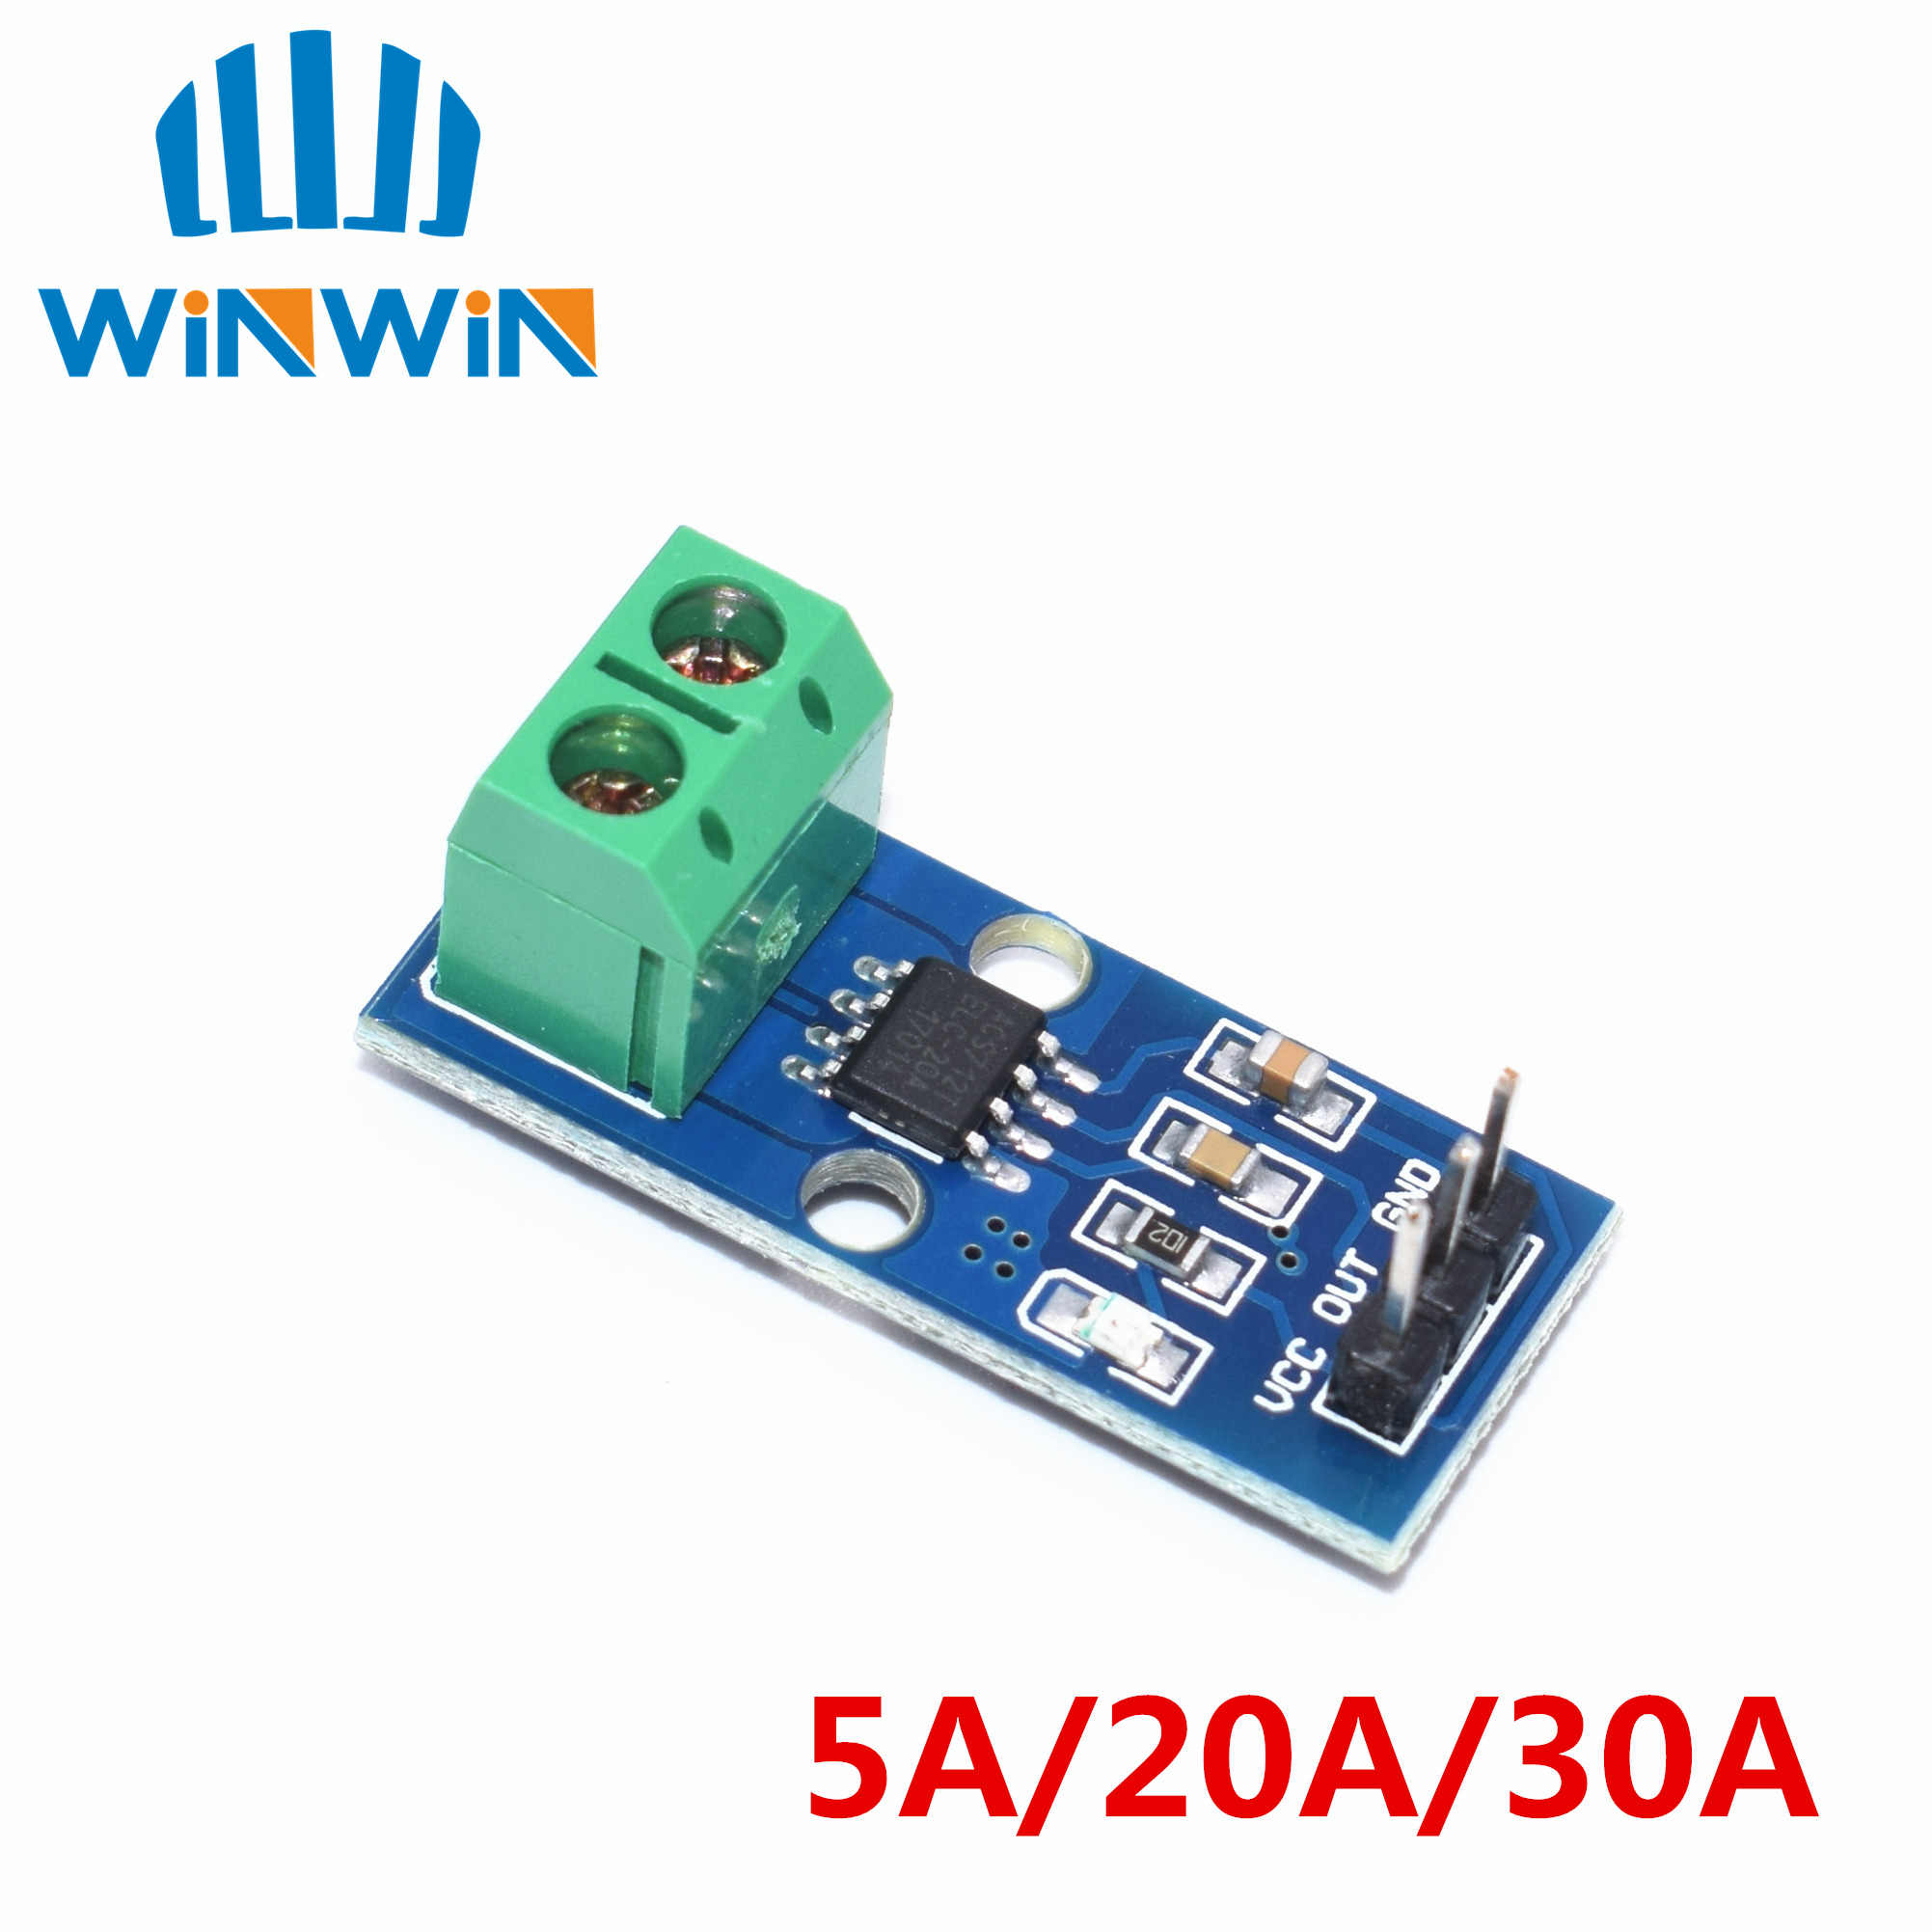 1pcs ACS712 5A/ACS712 20A/ACS712 30A Hall Current Sensor Module ACS712 model  ACS712 5A 20A 30A